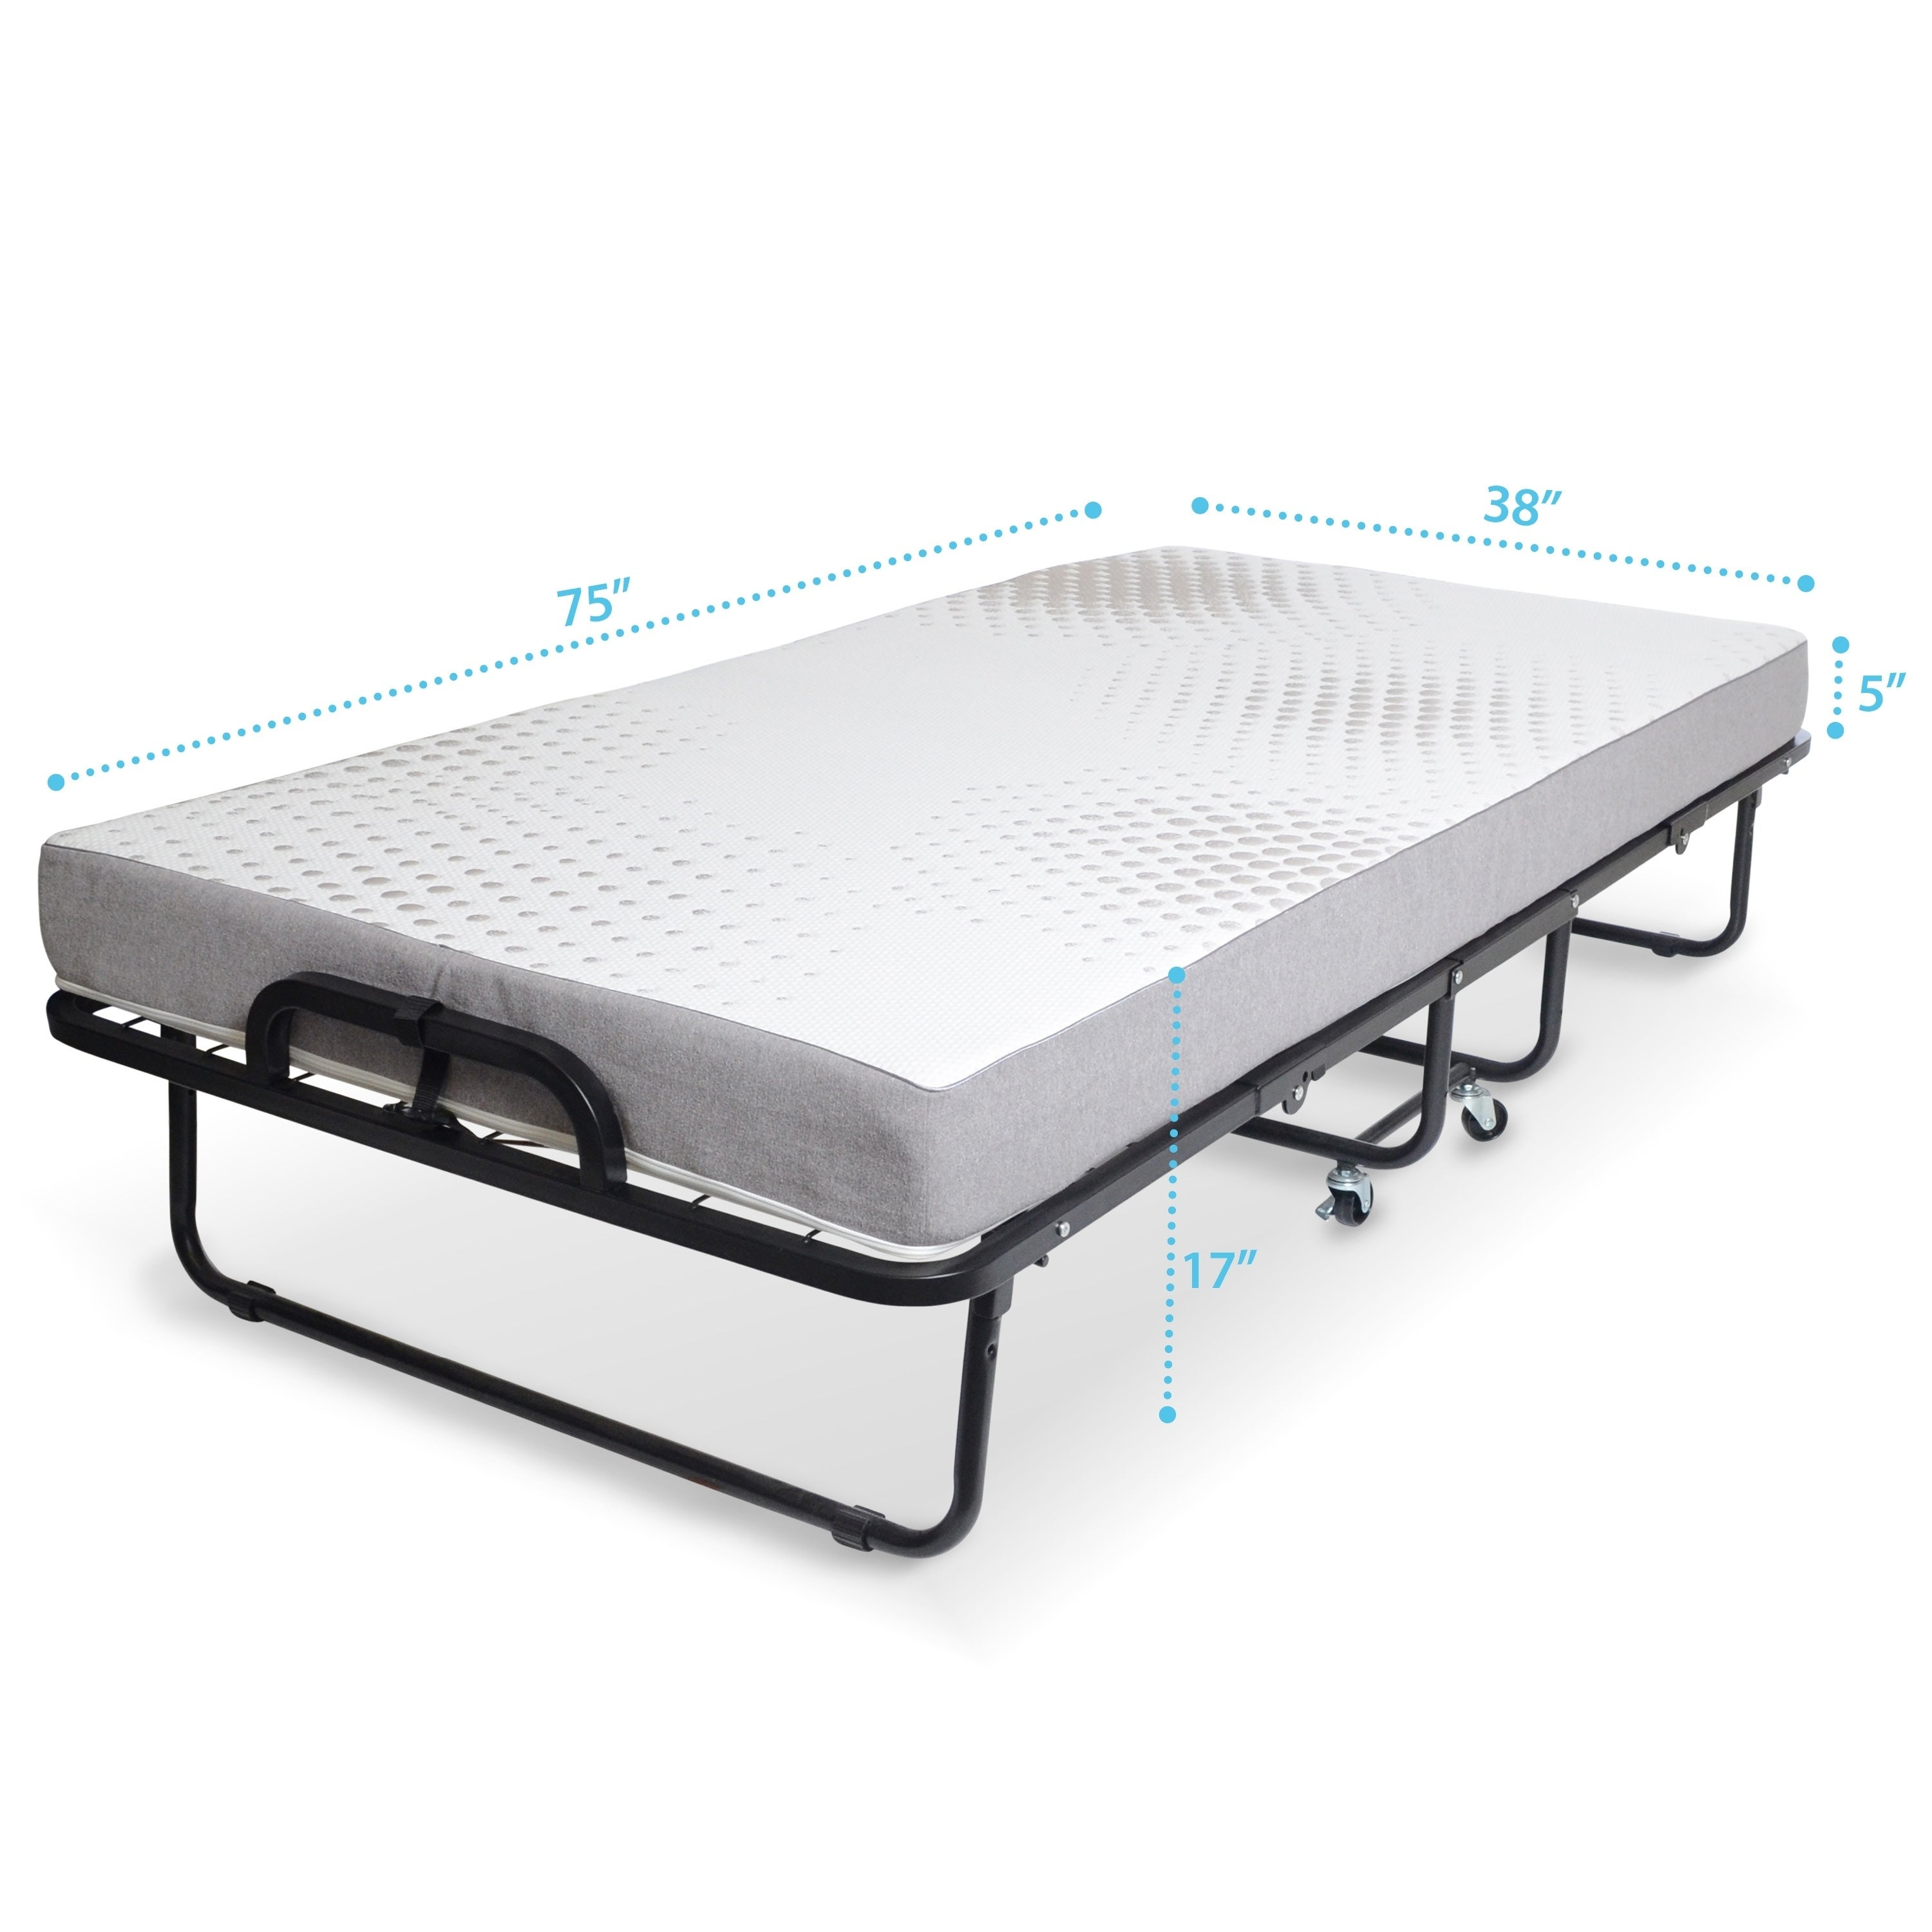 Milliard Diplomat Rollaway Folding Twin Size Guest Bed With Luxurious Memory Foam Mattress And Super Strong 75 X 38 Sy Frame Free Shipping Today